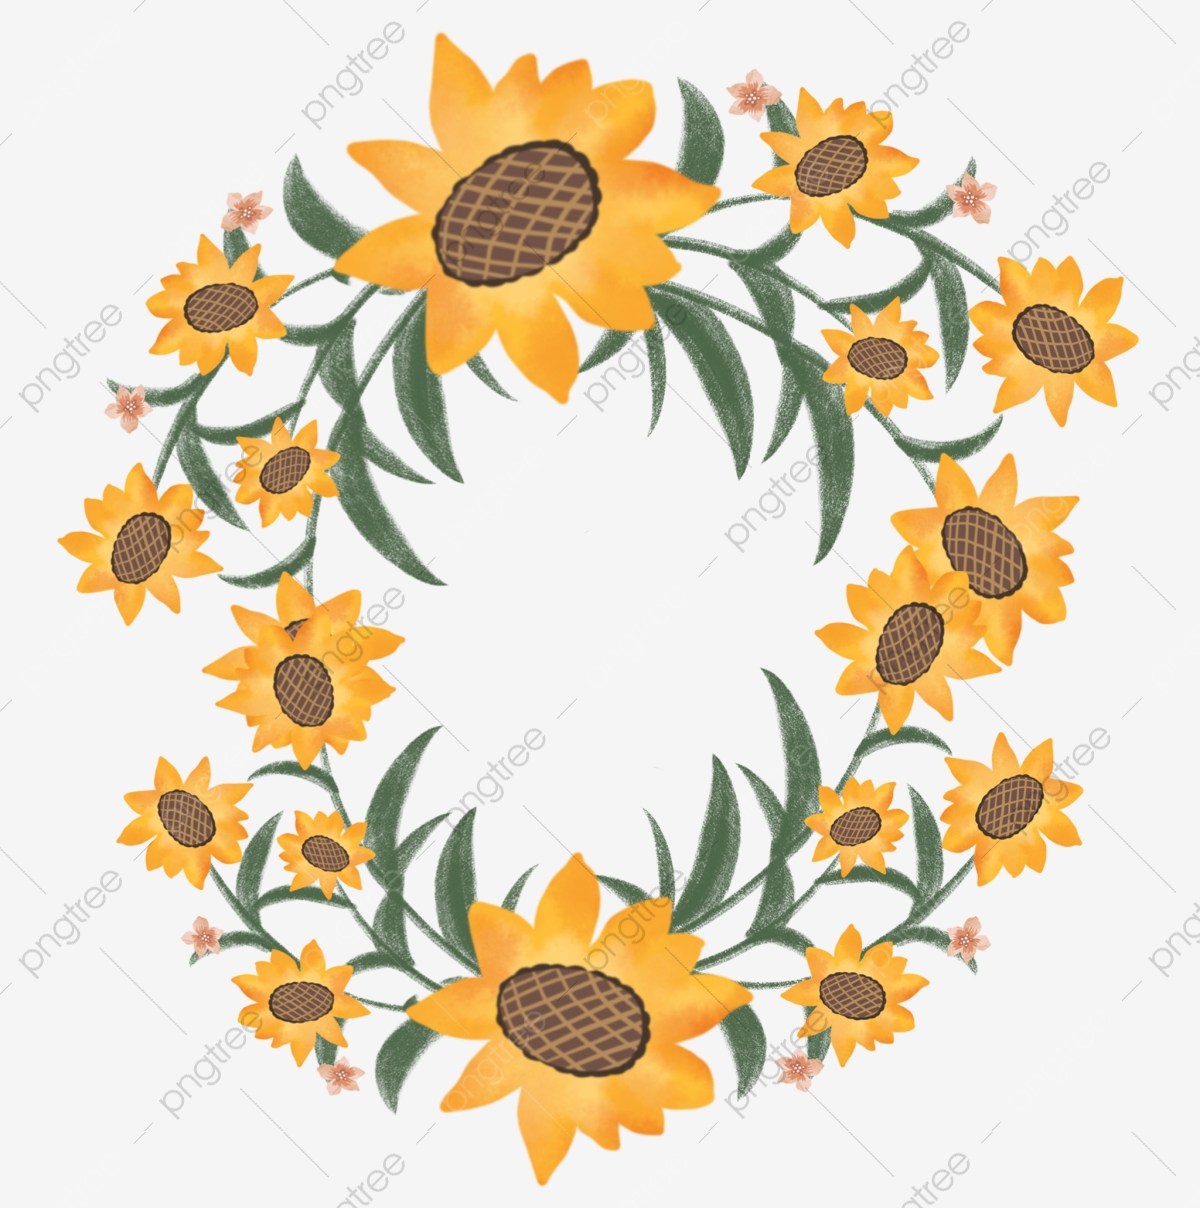 Sunflower Wreath Png Images Vector And Psd Files Free Download On Pngtree